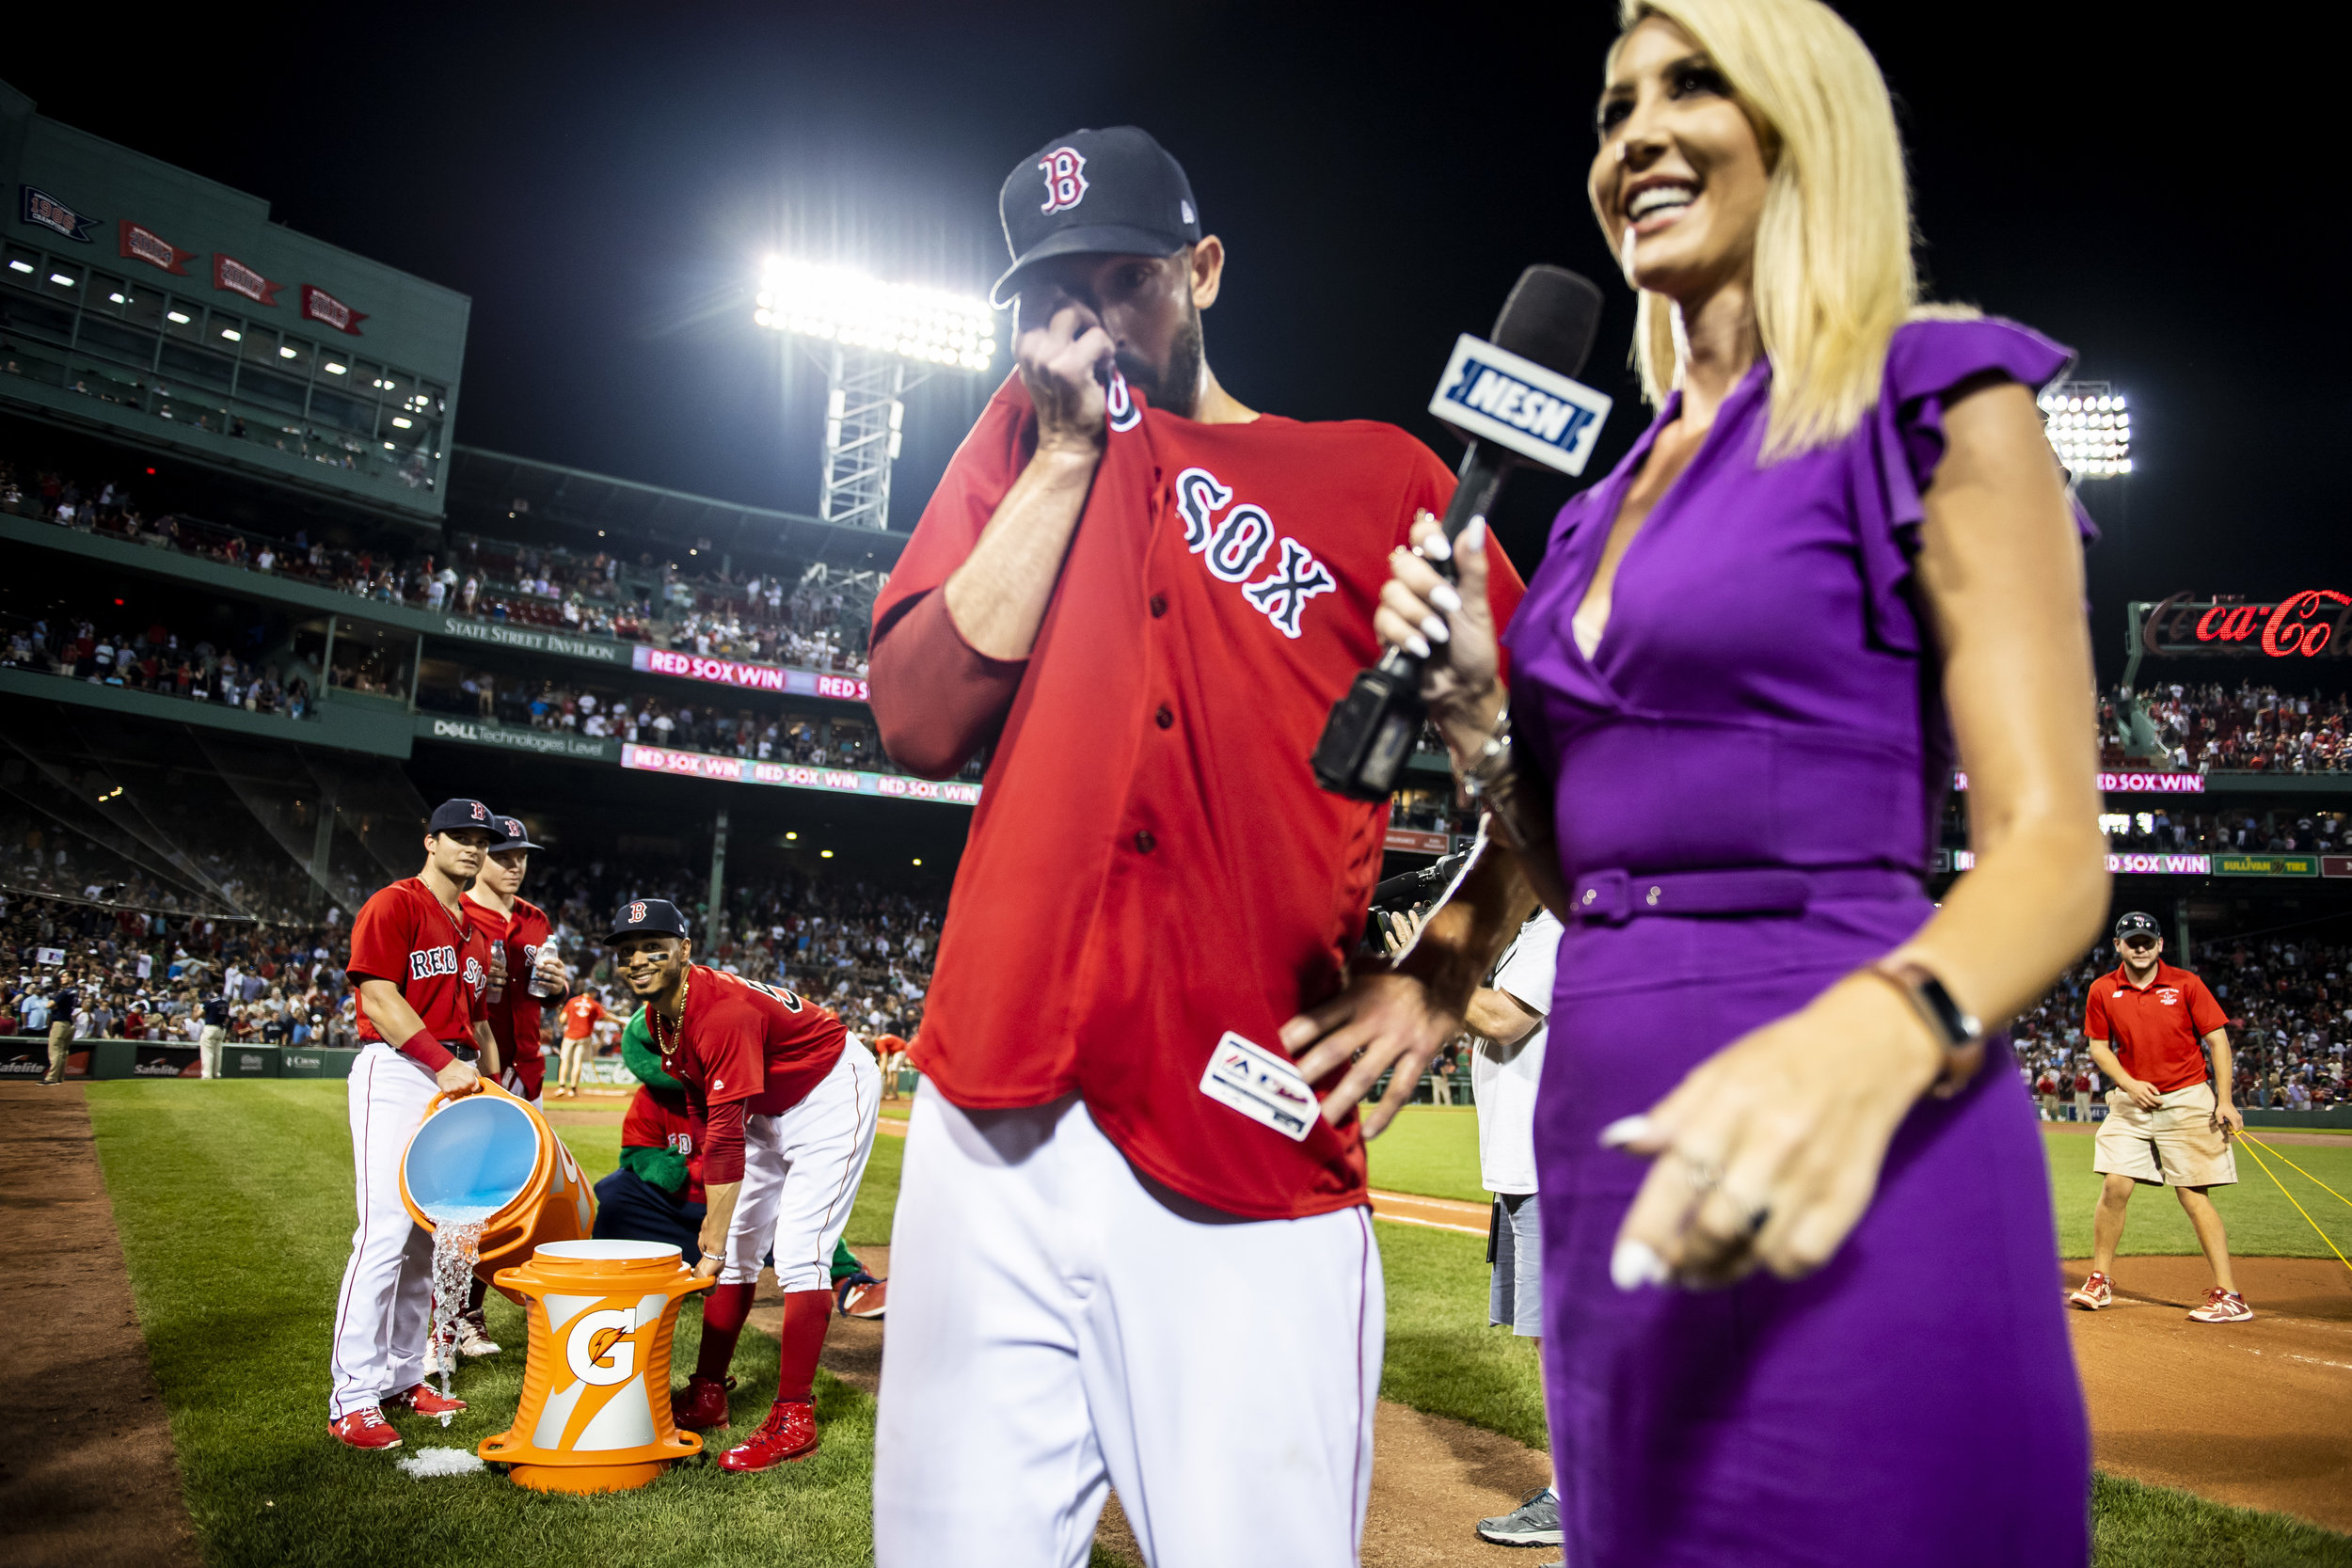 August 3, 2018, Boston, MA: Boston Red Sox outfielder Andrew Benintendi, Boston Red Sox outfielder Mookie Betts and Boston Red Sox outfielder Brock Holt wait to dump gatorade over Boston Red Sox pitcher Rick Porcello after his one hit complete game after the Boston Red Sox defeated the New York Yankees at Fenway Park in Boston, Massachusetts on Friday, August 3, 2018. (Photo by Matthew Thomas/Boston Red Sox)